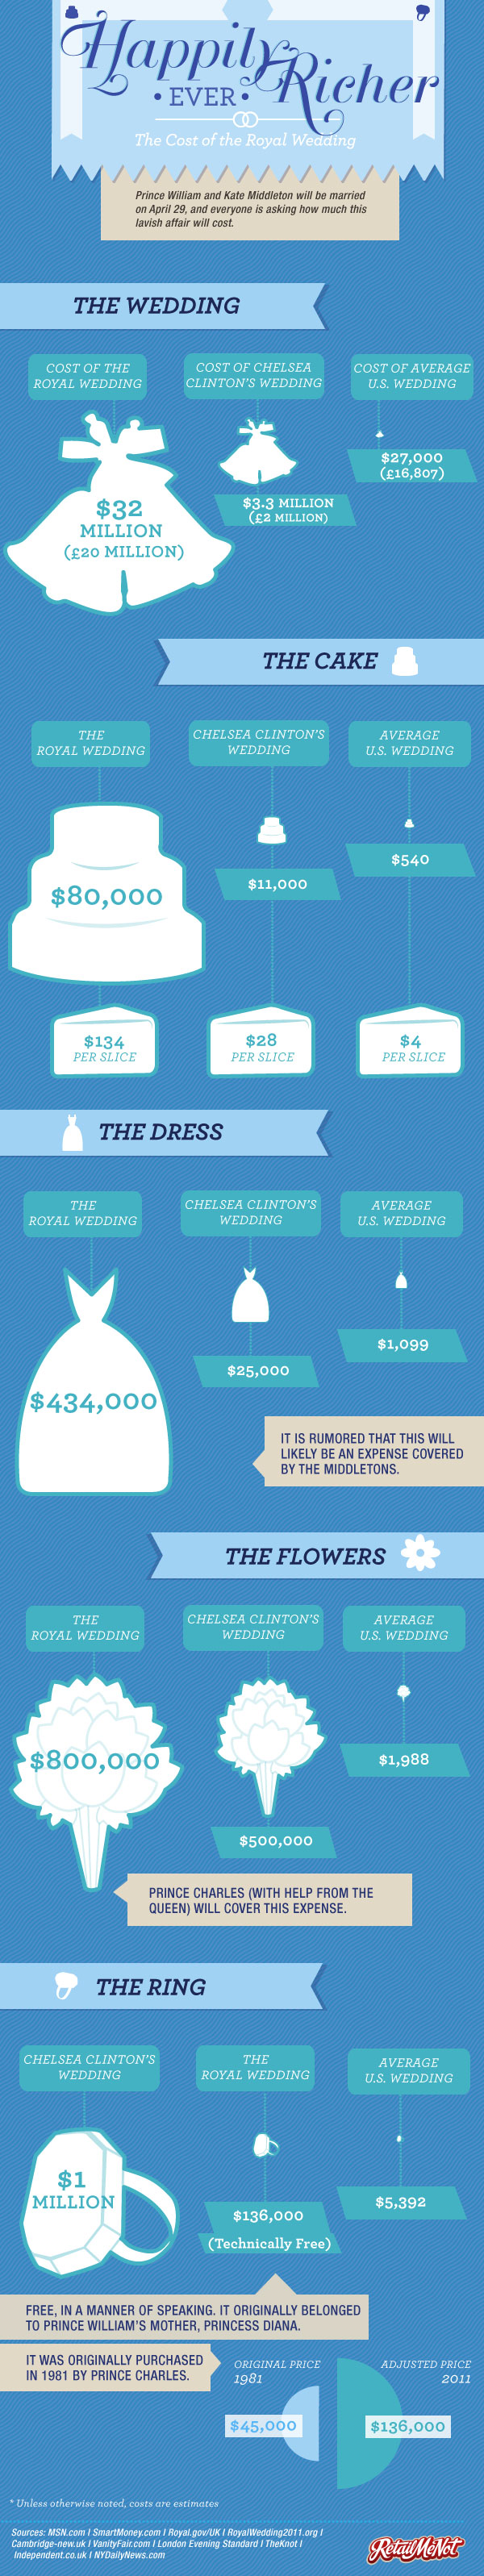 Happily Ever After and Richer - Costs of a Royal Wedding Infographic